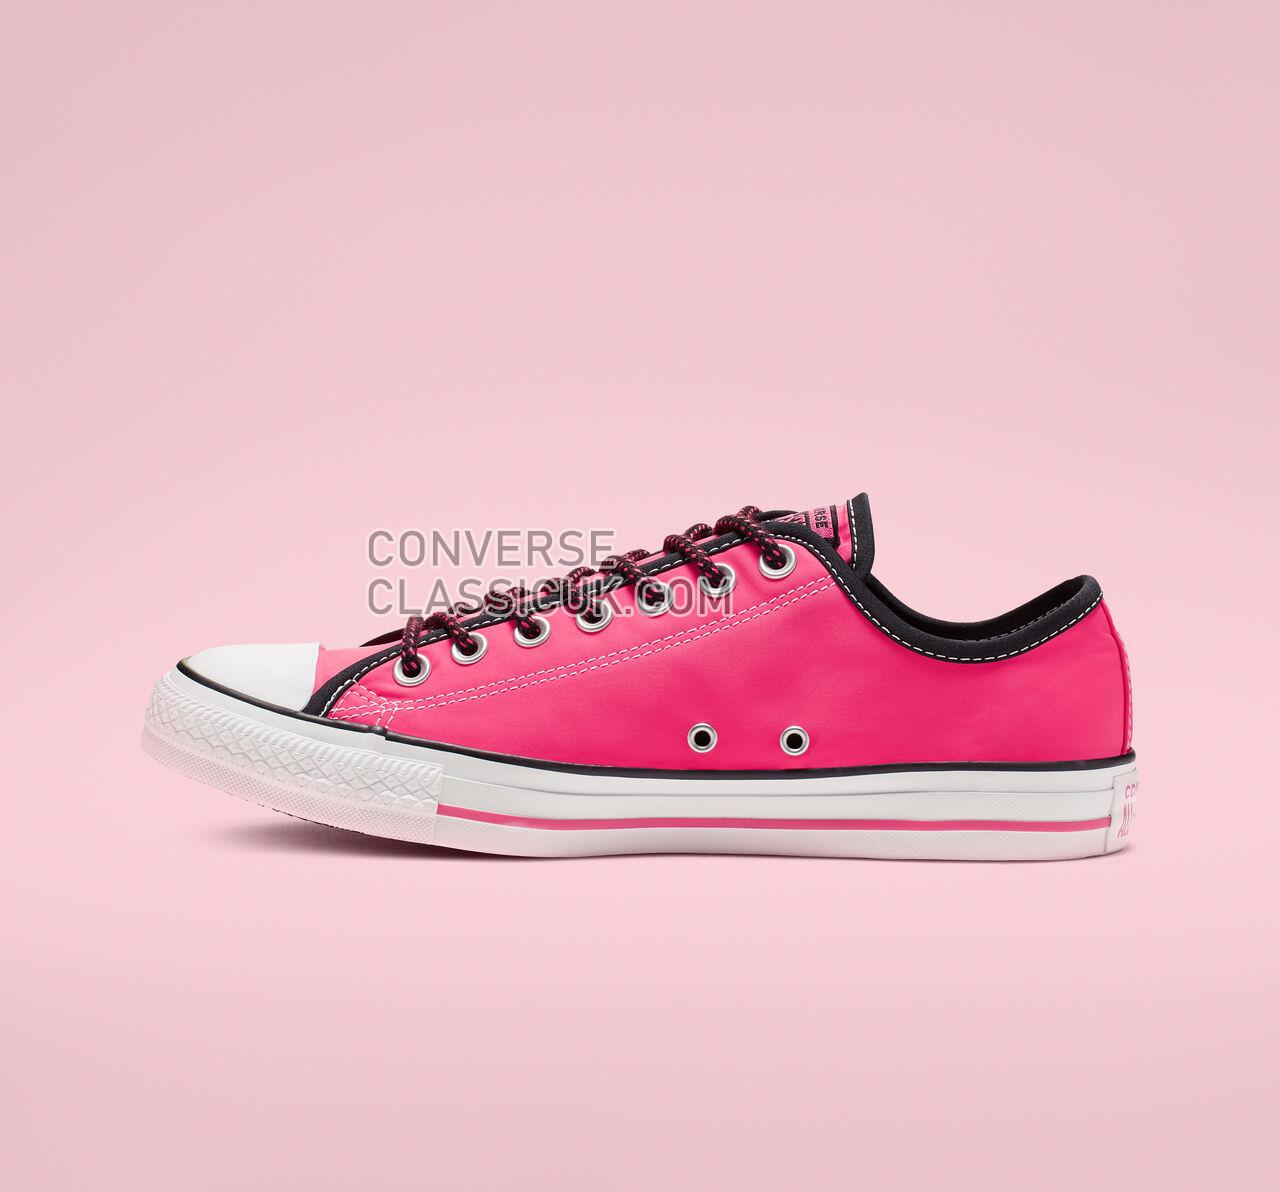 Converse Chuck Taylor All Star Get Tubed Low Top Mens Womens Unisex 164094F Racer Pink/Black/White Shoes